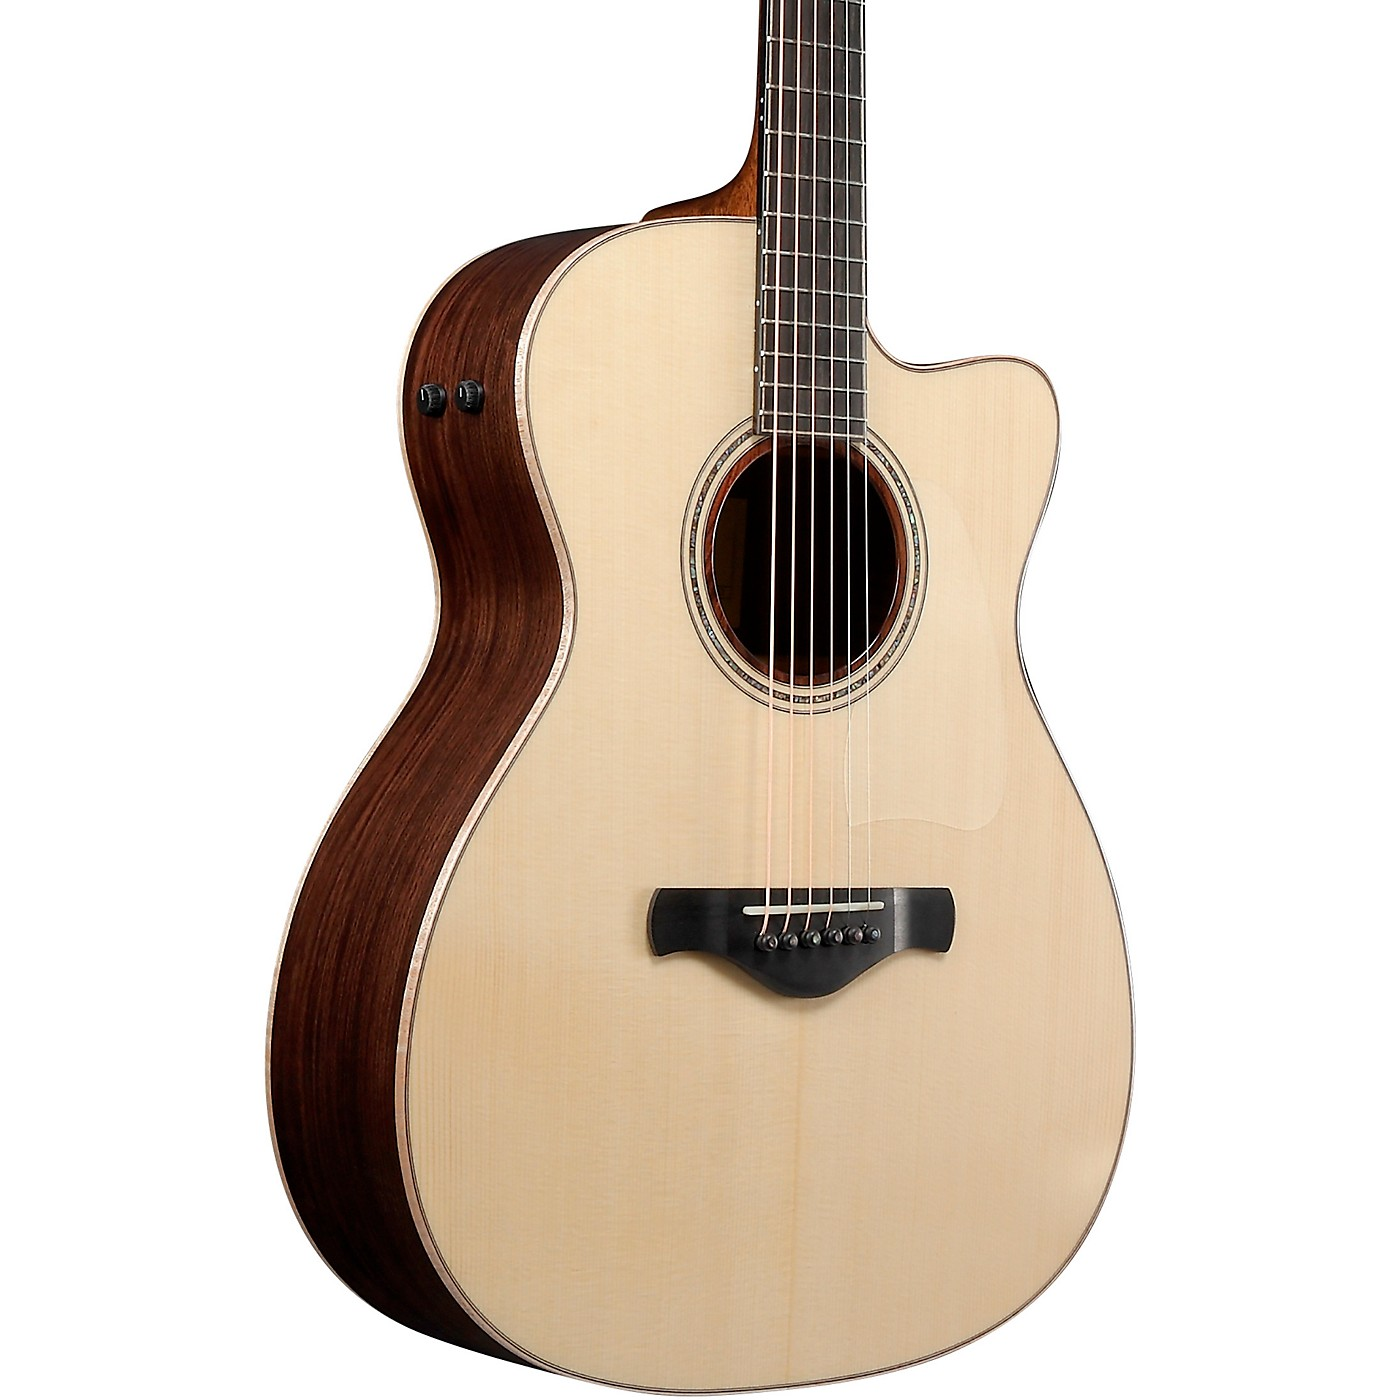 Ibanez ACFS580CE Artwood Fingerstyle All-Solid Grand Concert Acoustic-Electric Guitar thumbnail